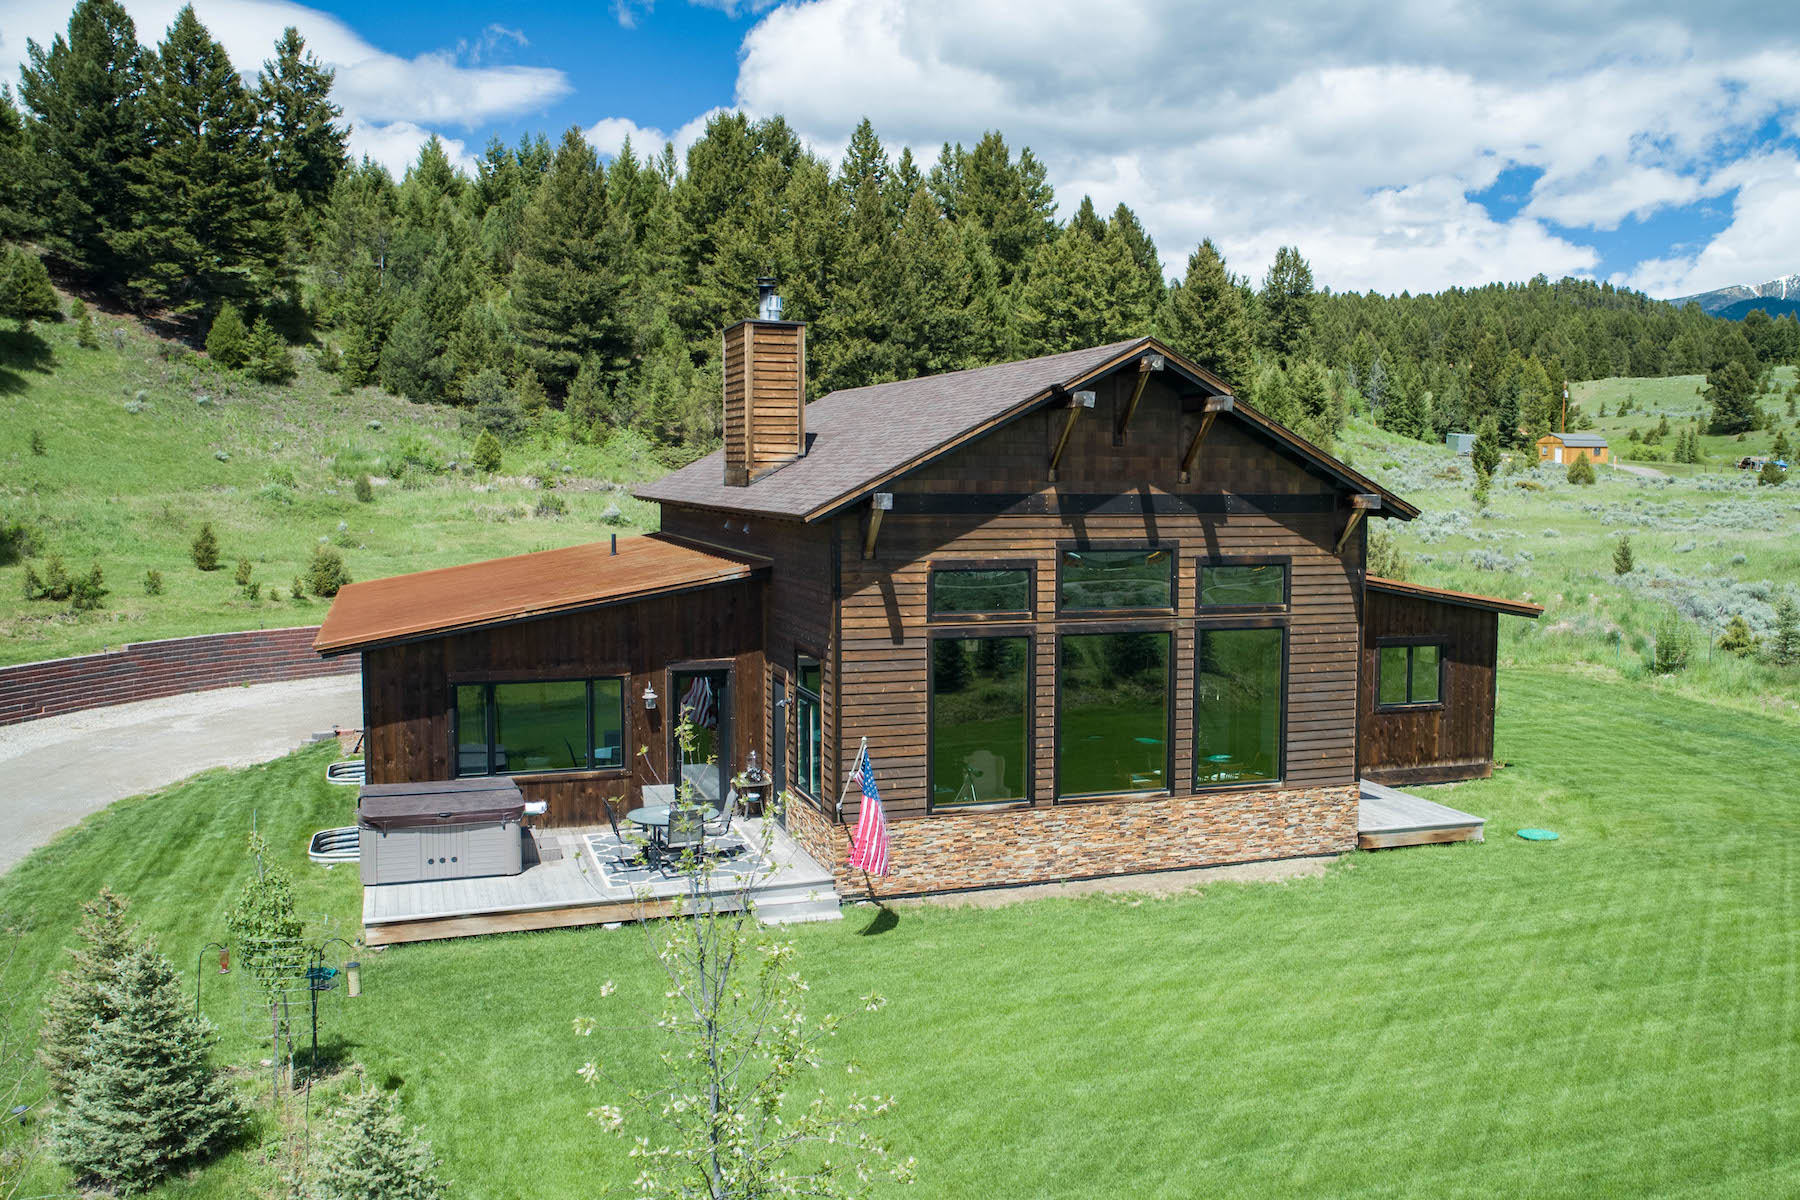 Single Family Homes for Sale at 287 Windy Pass Trail Big Sky, Montana 59716 United States